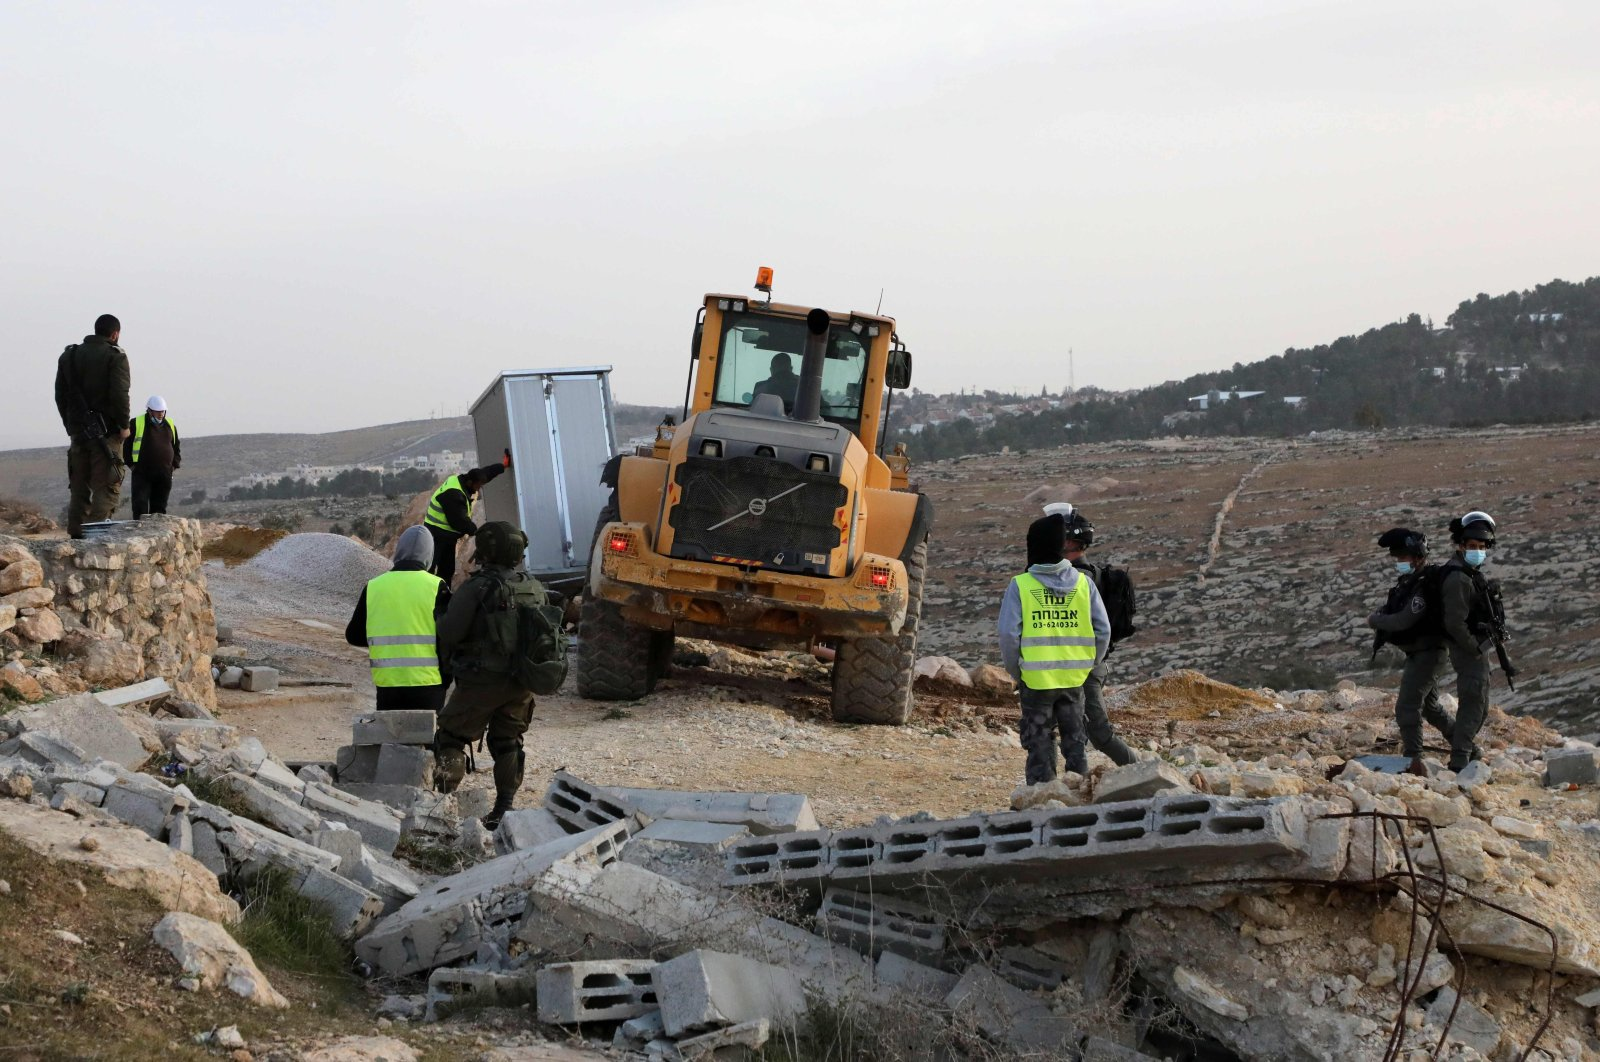 Israeli security forces gather as an army bulldozer removes a structure in the village of al-Mufagara, near Yatta, south of Hebron in the occupied West Bank, Palestine, Jan. 27, 2021. (AFP Photo)